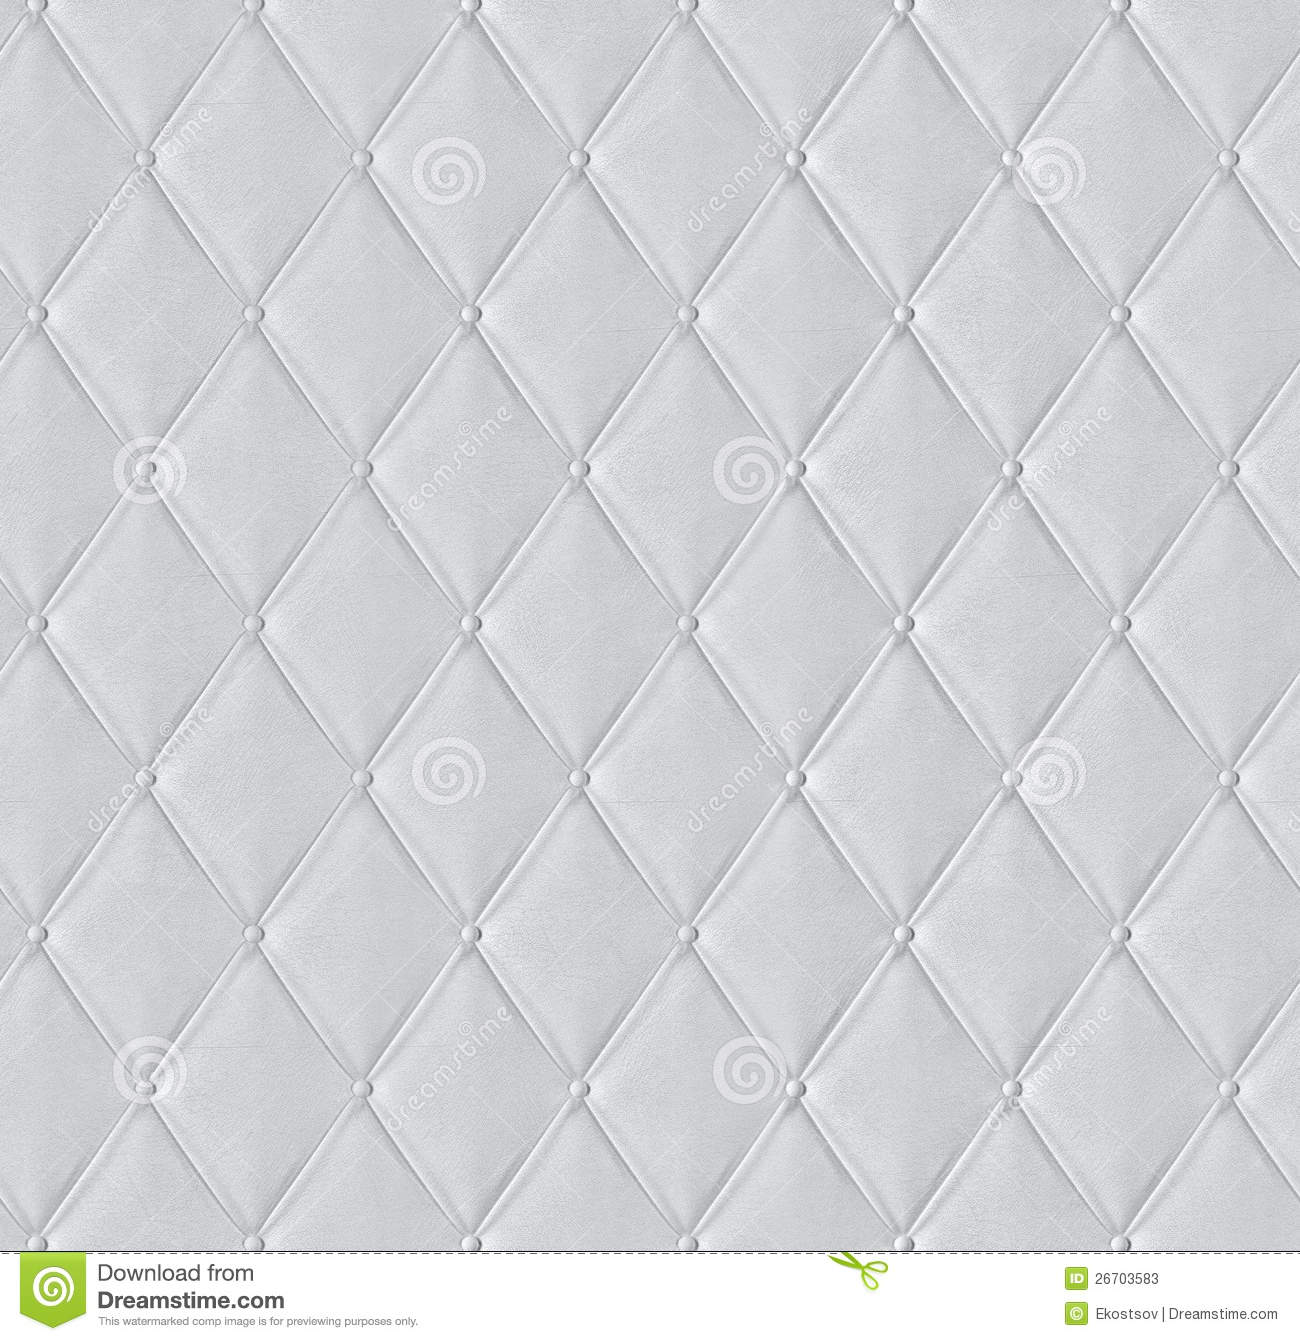 White Quilted Leather Tiled Texture Stock Photo 26703583 - Megapixl : leather quilt - Adamdwight.com